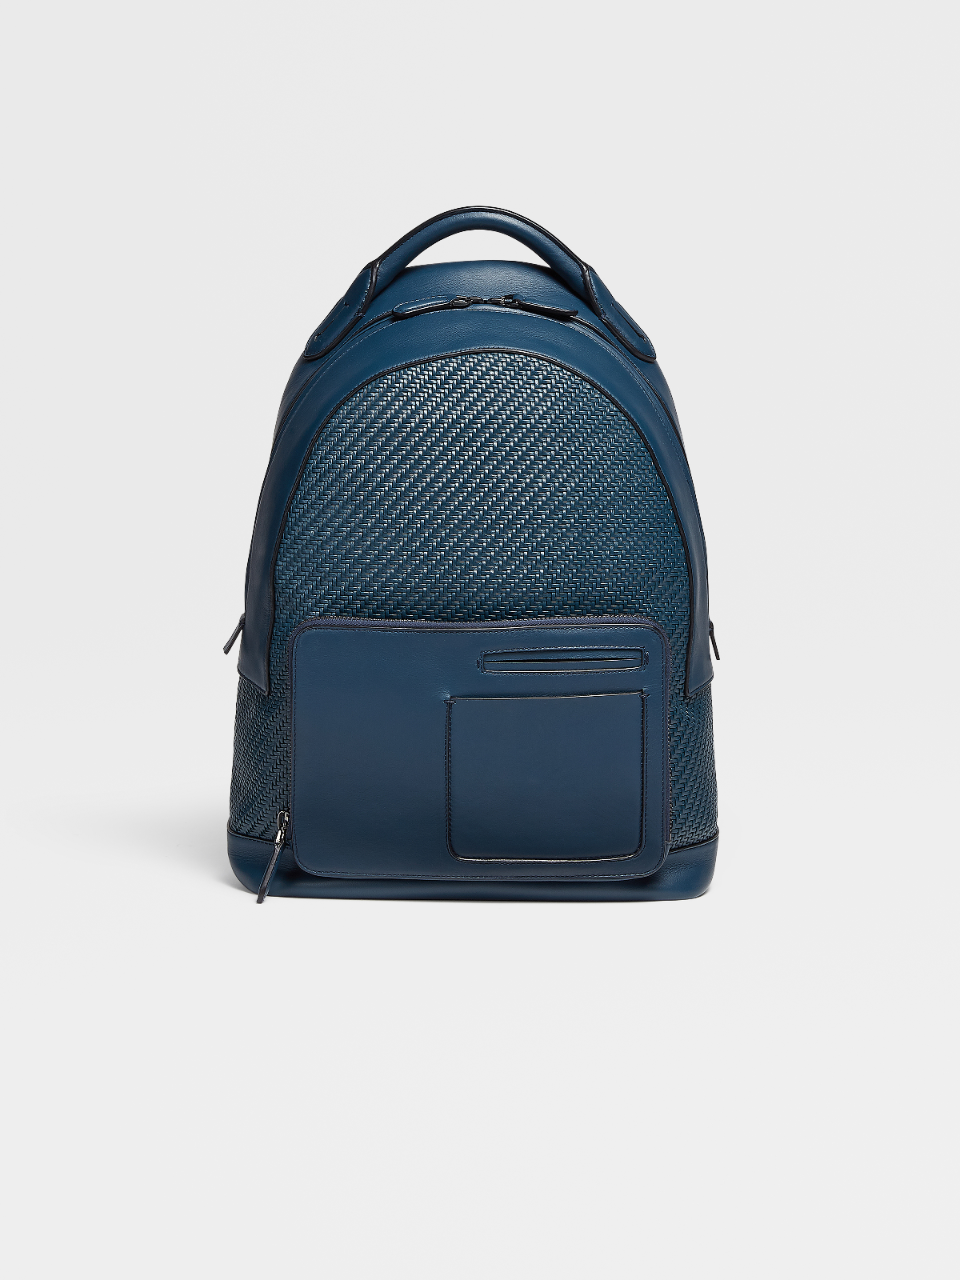 PELLETESSUTA™ Everyday Backpack